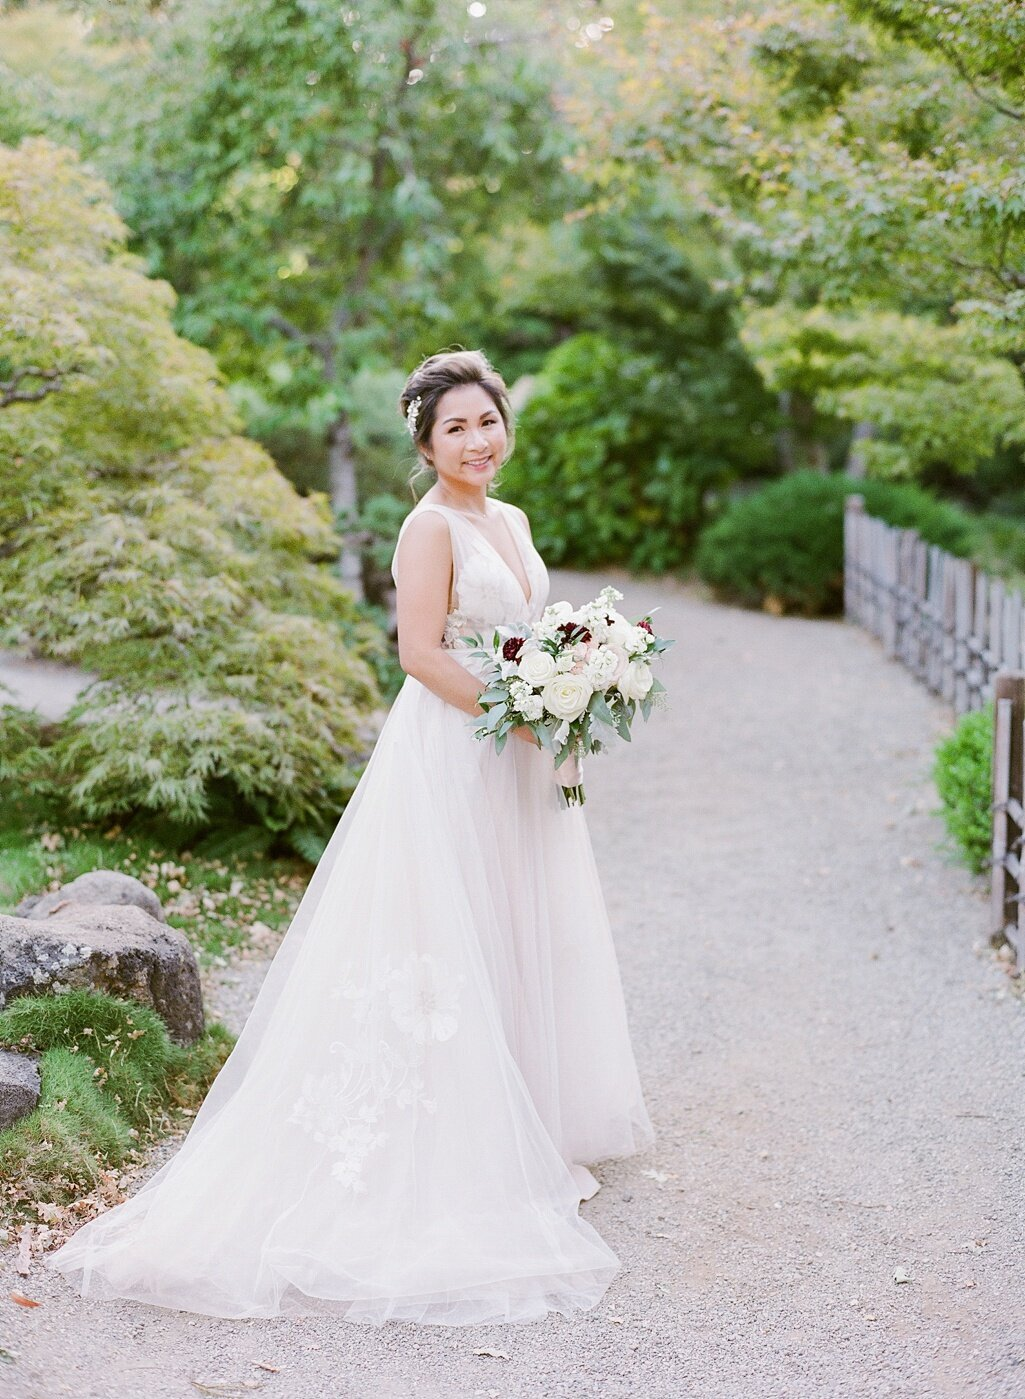 Jessie-Barksdale-Photography_Hakone-Gardens-Saratoga_San-Francisco-Bay-Area-Wedding-Photographer_0086